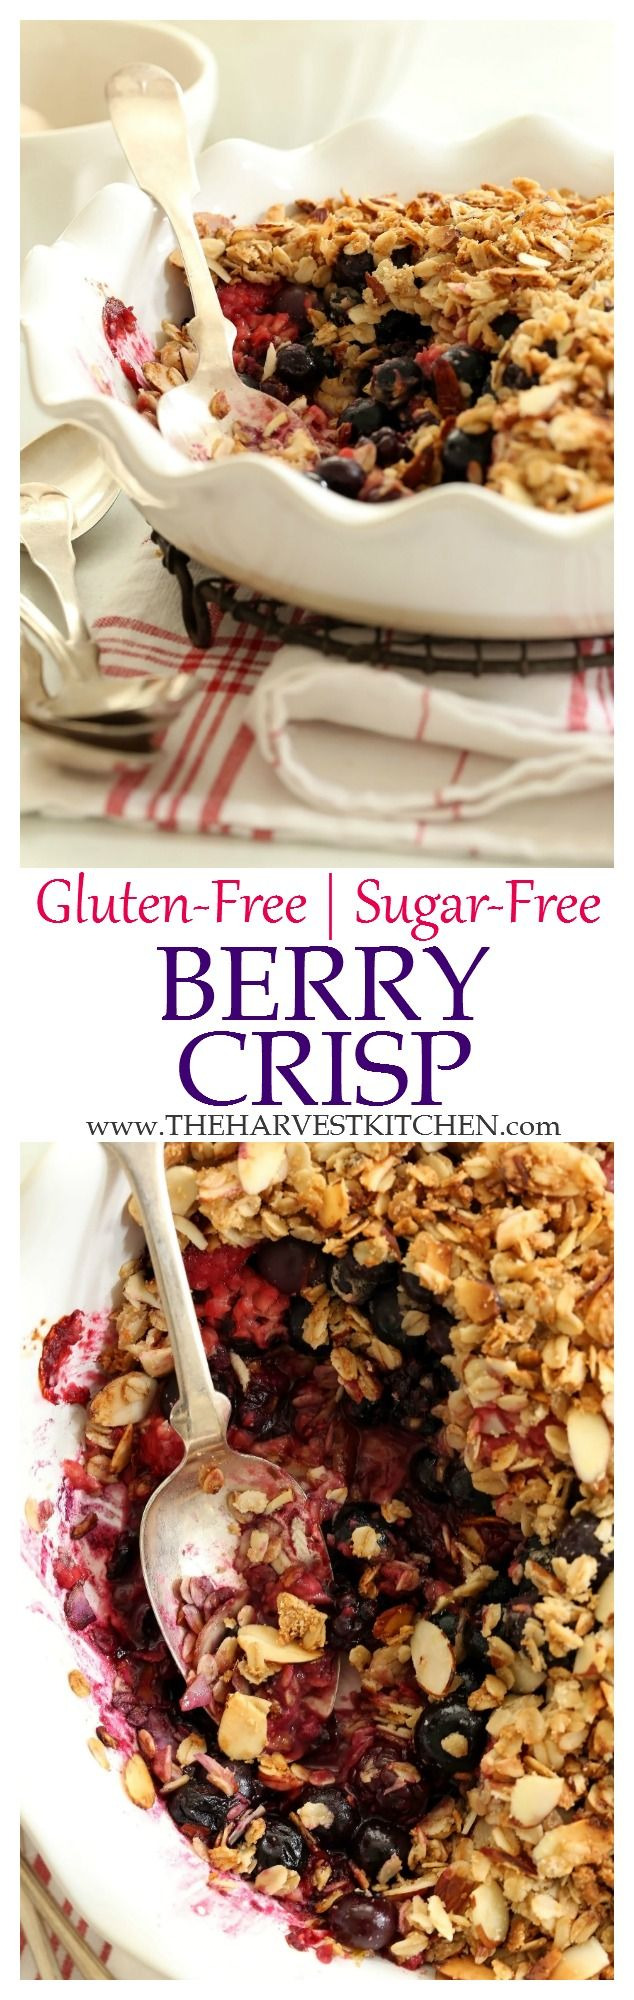 This Gluten Free Berry Crisp is made with a mix of blueberries, raspberries and blackberries. The sweetness comes from the delicate crisp topping, which is sweetened only with pure maple syrup. This healthy berry crisp makes a perfect summer dessert! | clean eating | | healthy dessert recipes | | fruit dessert recipes | | healthy recipes |